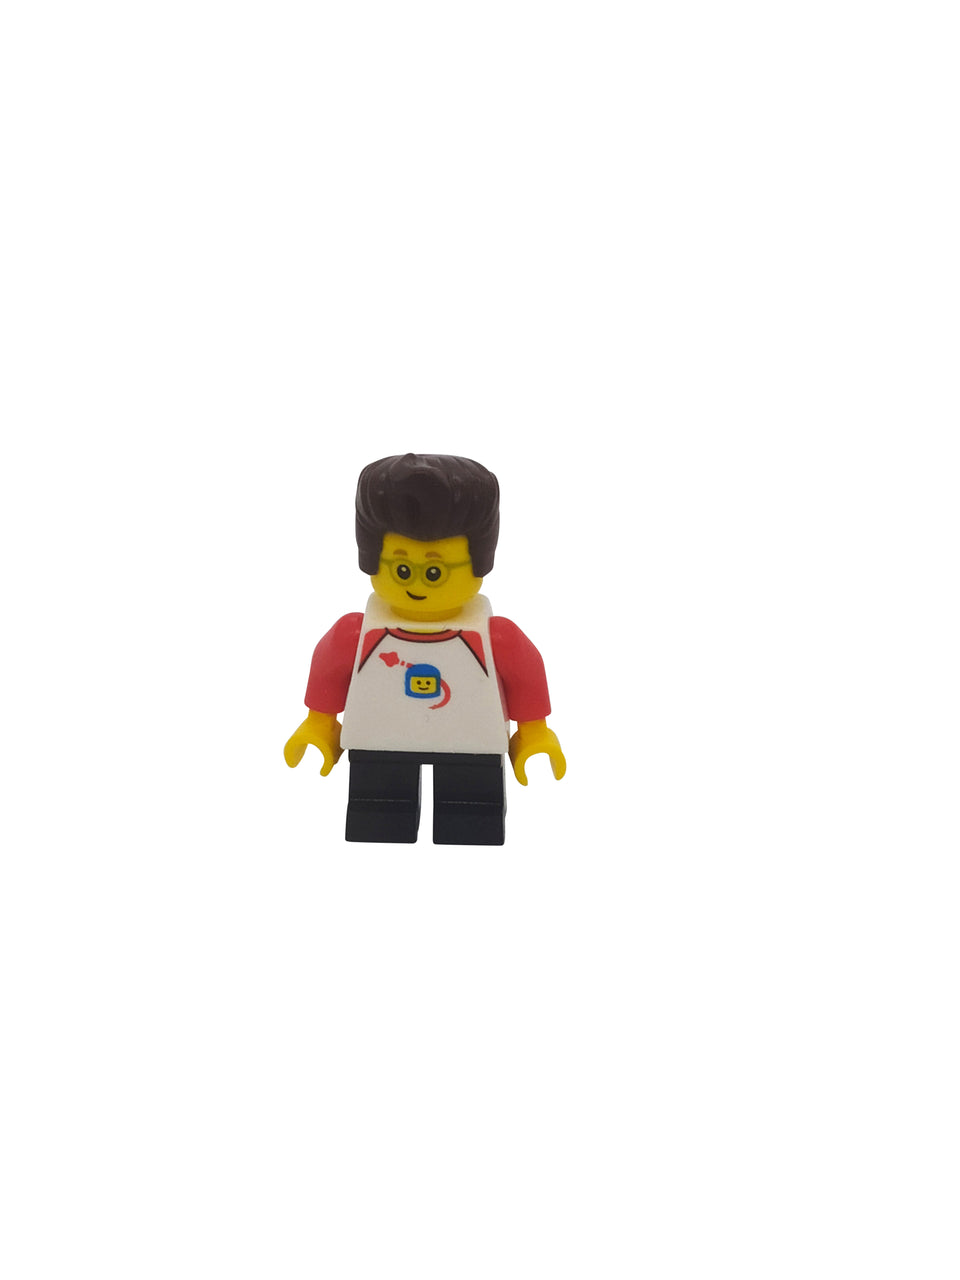 Little boy with cool hair and glasses - Lego